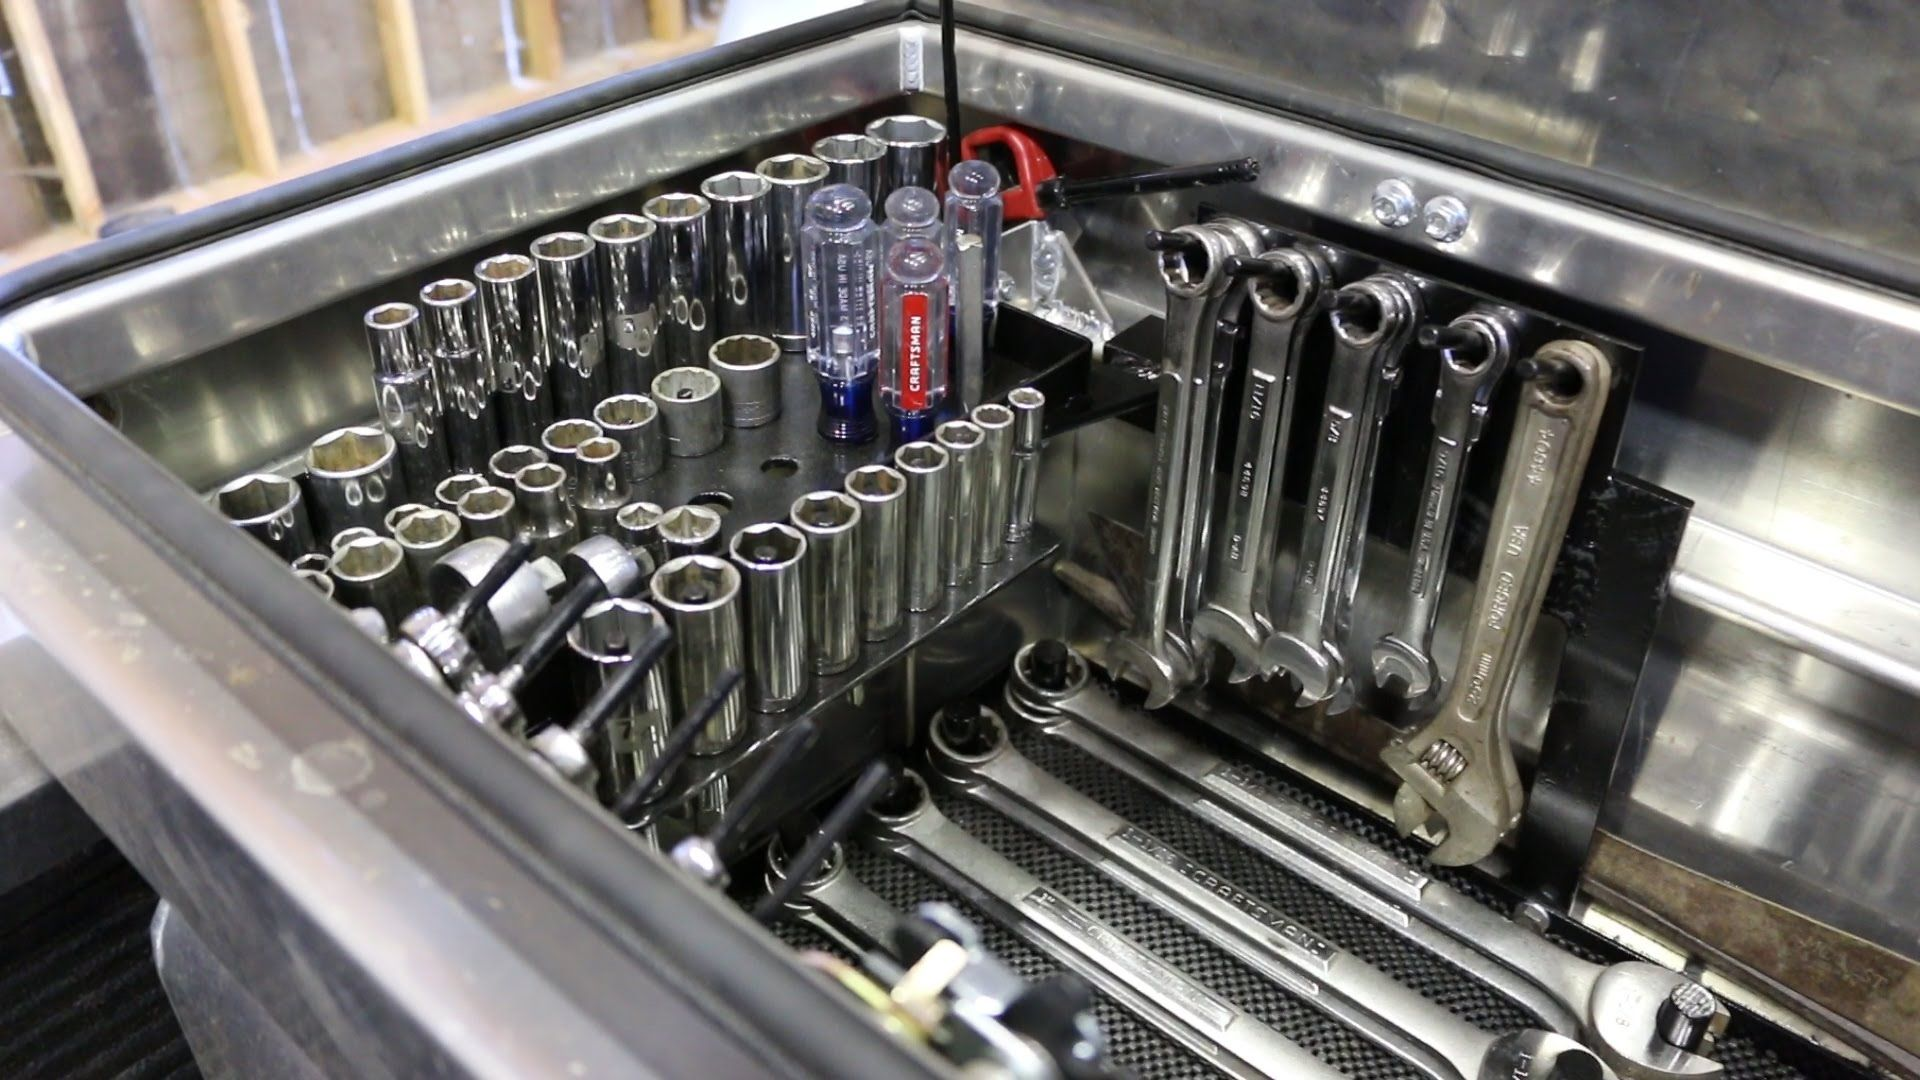 I Build A Toolbox Organizer For All My Wrenches And Other Tools I Need To Keep With Me On My Pickup For Farm Re Truck Tools Truck Bed Tool Boxes Truck